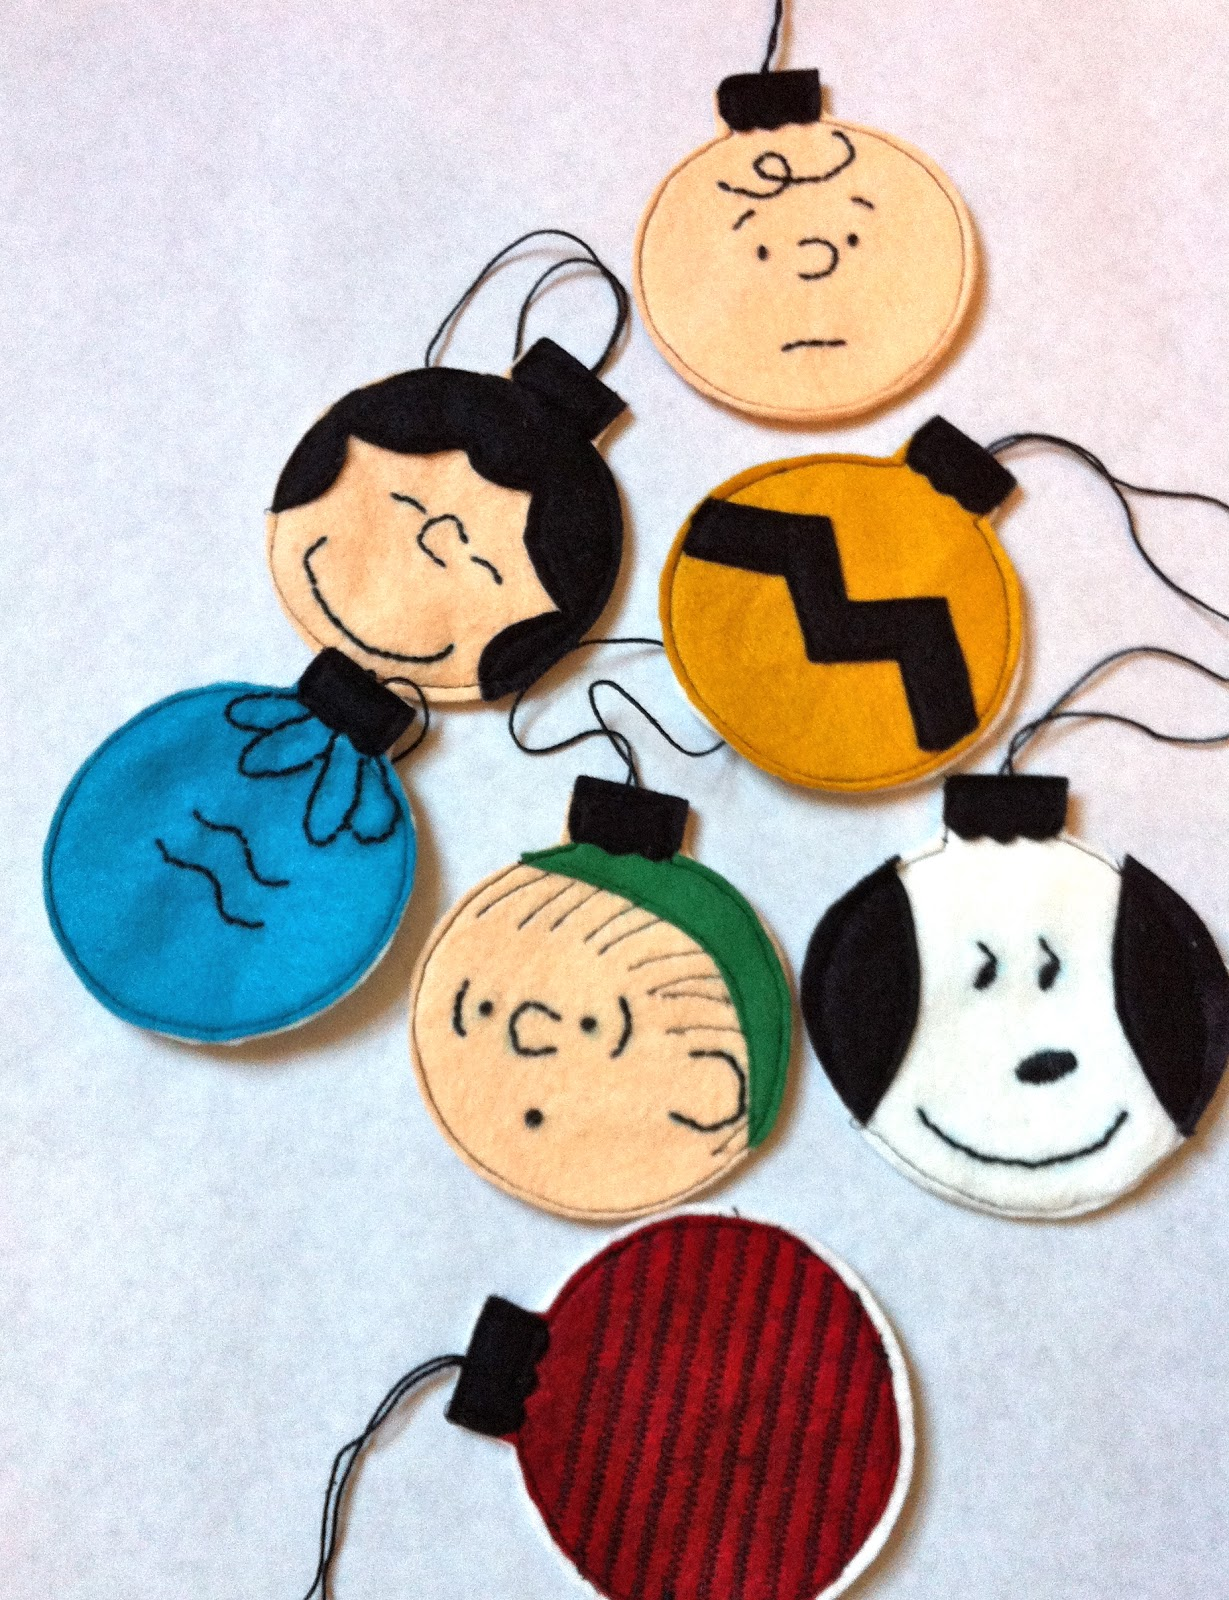 charlie brown christmas ornaments tutorial - Charlie Brown And Snoopy Christmas Decorations